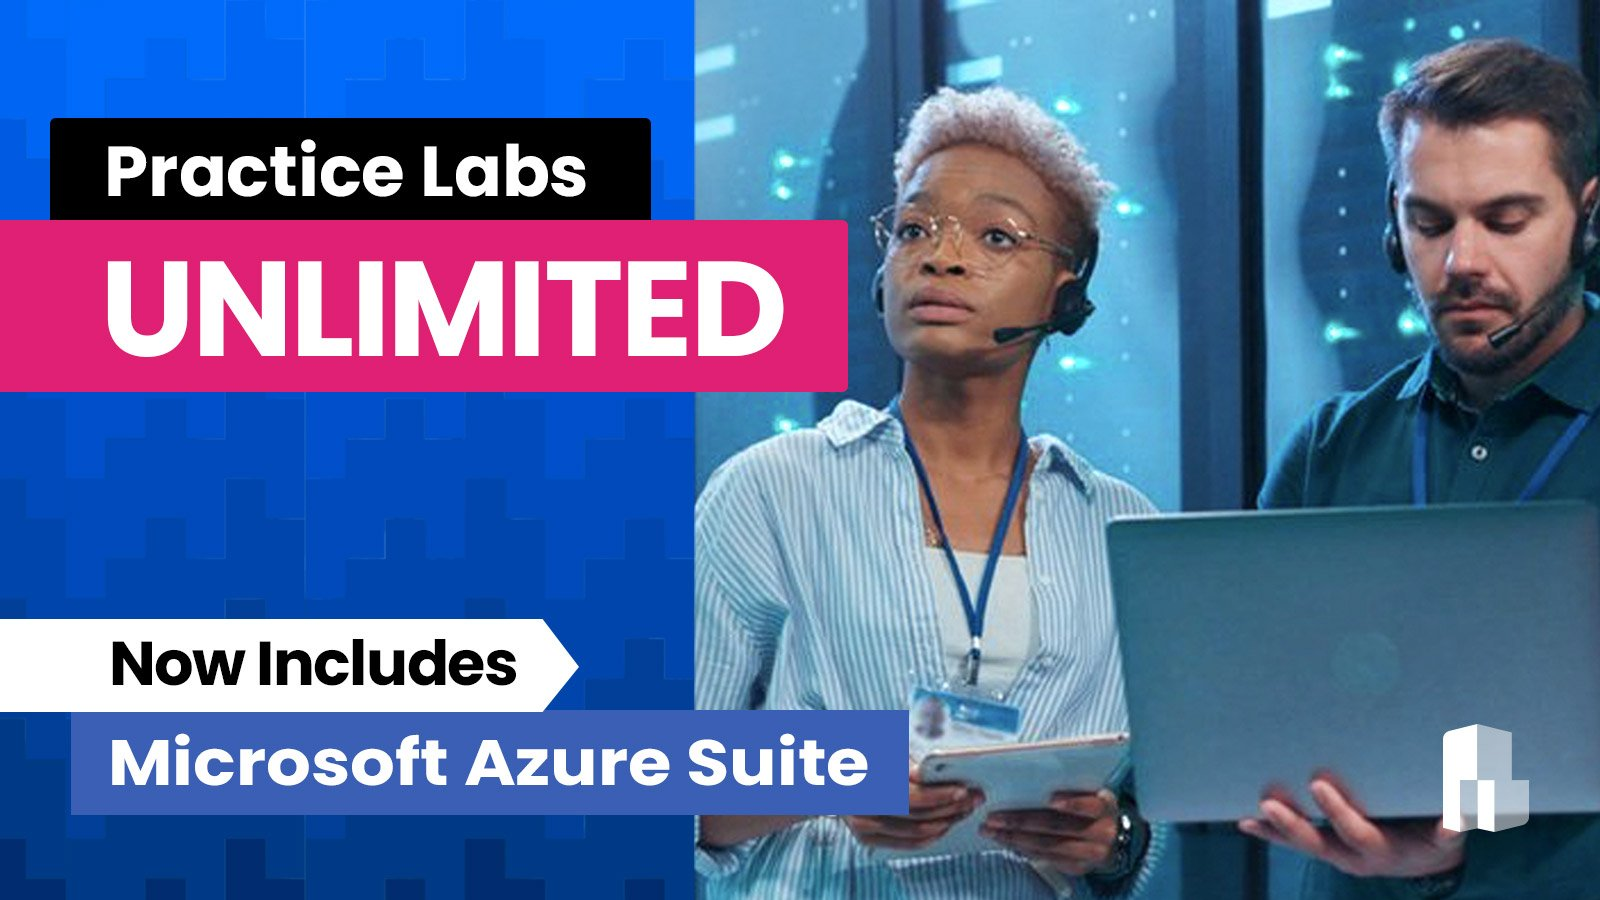 21-06-Unlimited-with-Azure-Blog-1600x900